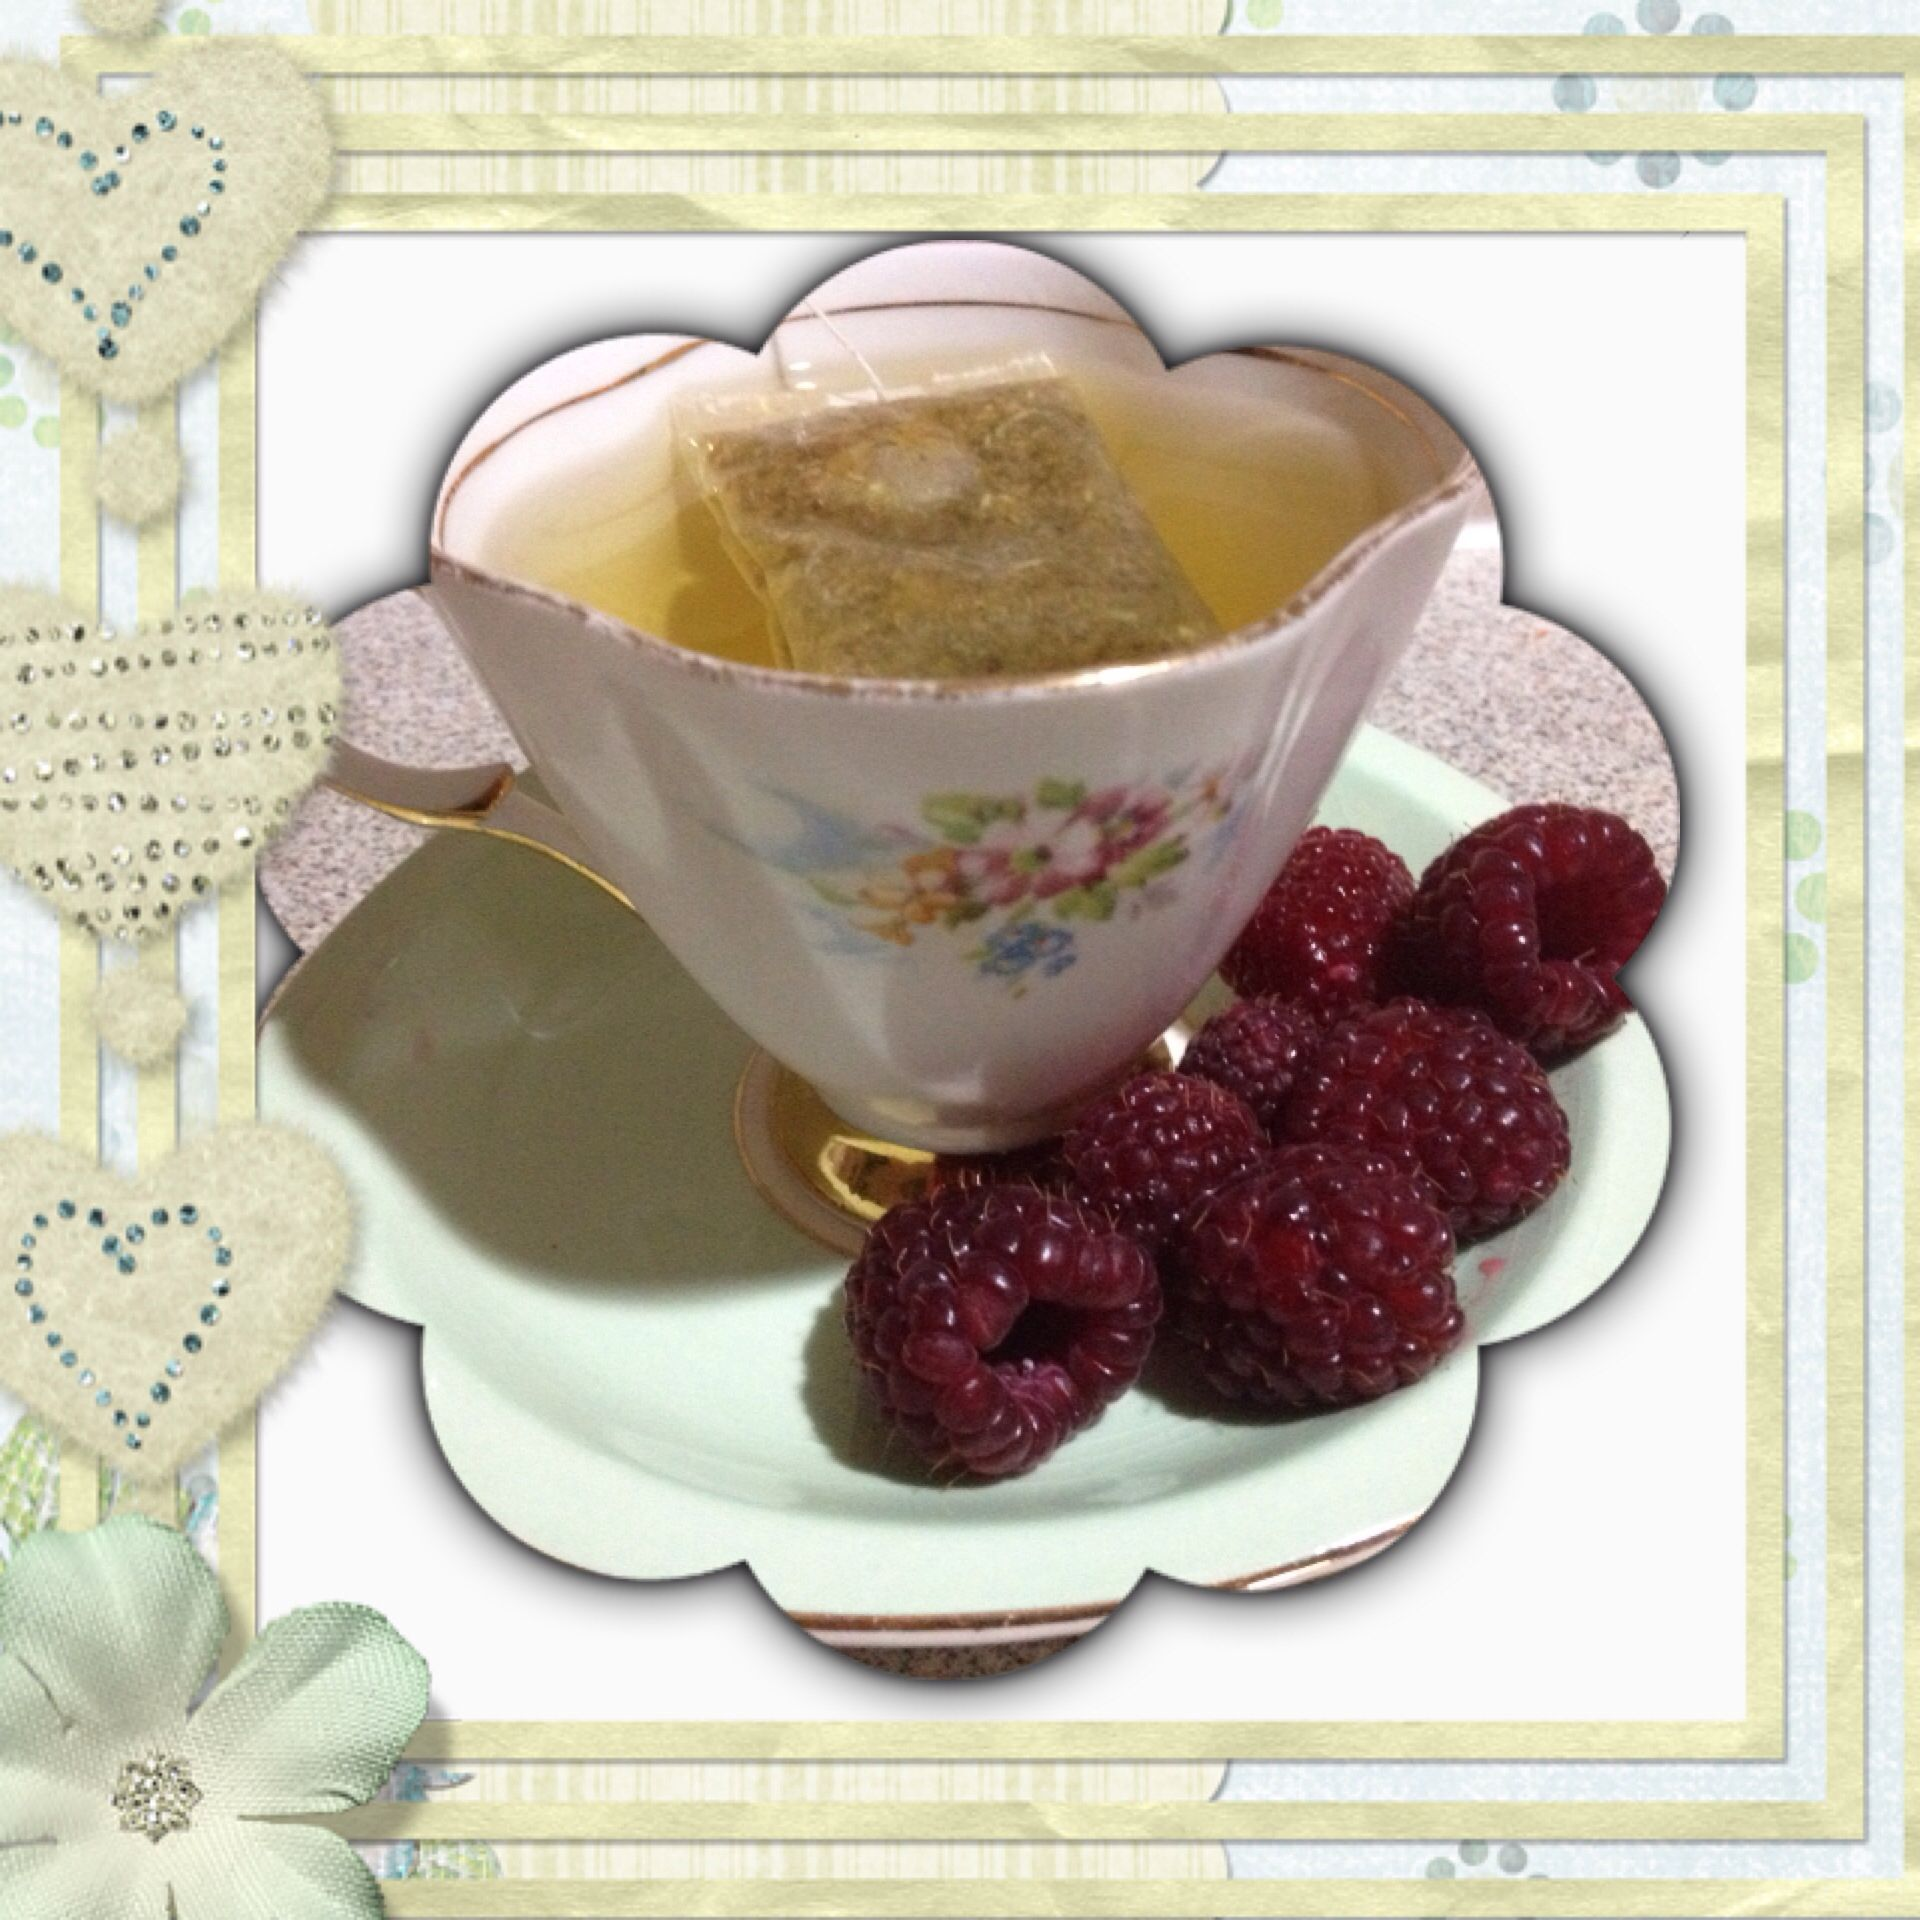 #Camomile #Tea fresh #Raspberries Bone #WindsorChina #ChinaTeaCup all makes for a beautiful evening cuppa and peaceful sleep #HealthyLiving